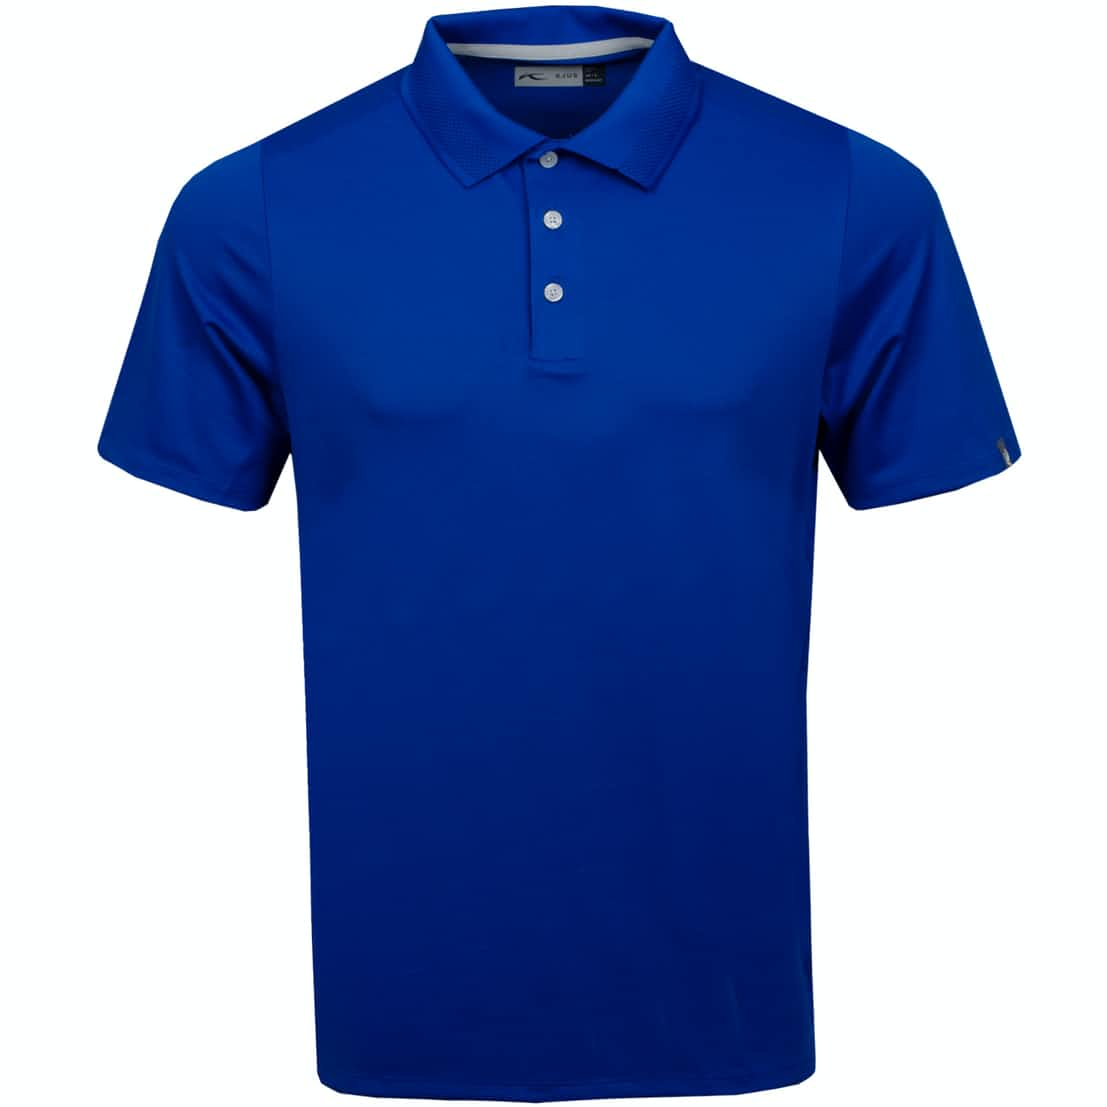 Luan Polo Pacific Blue - SS19